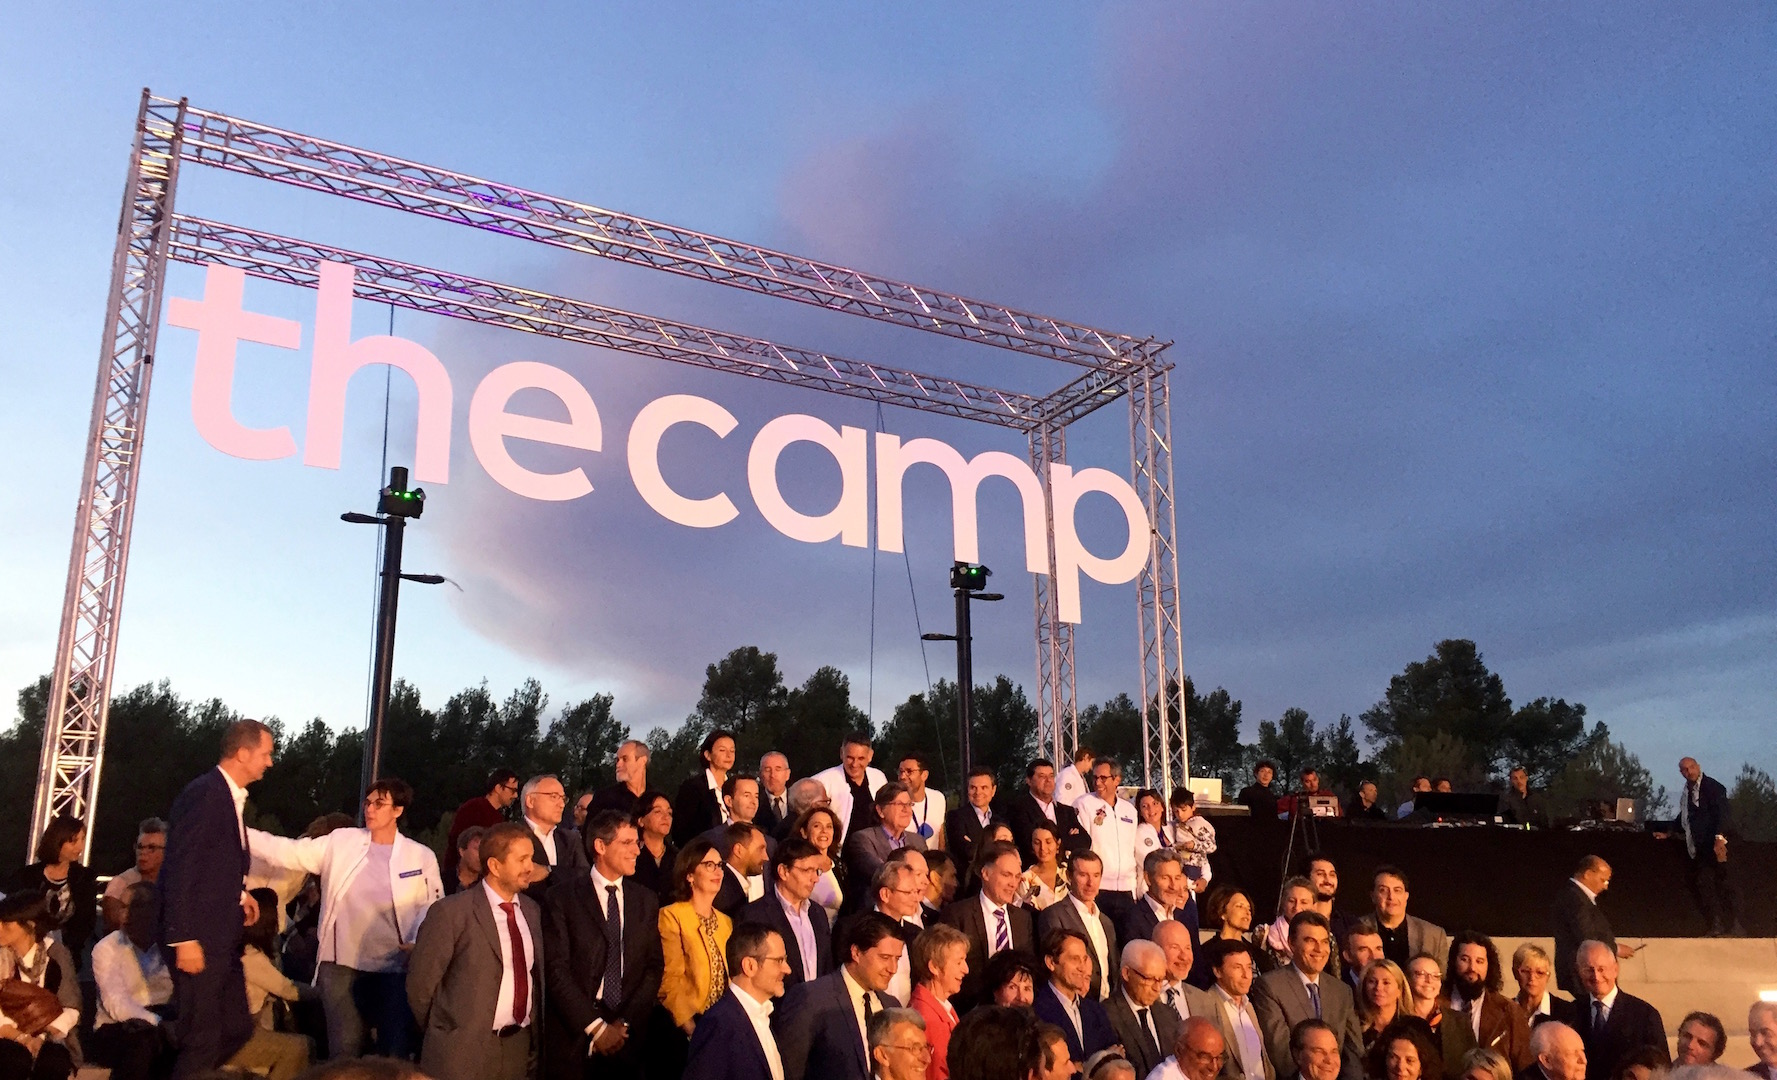 thecamp inauguration